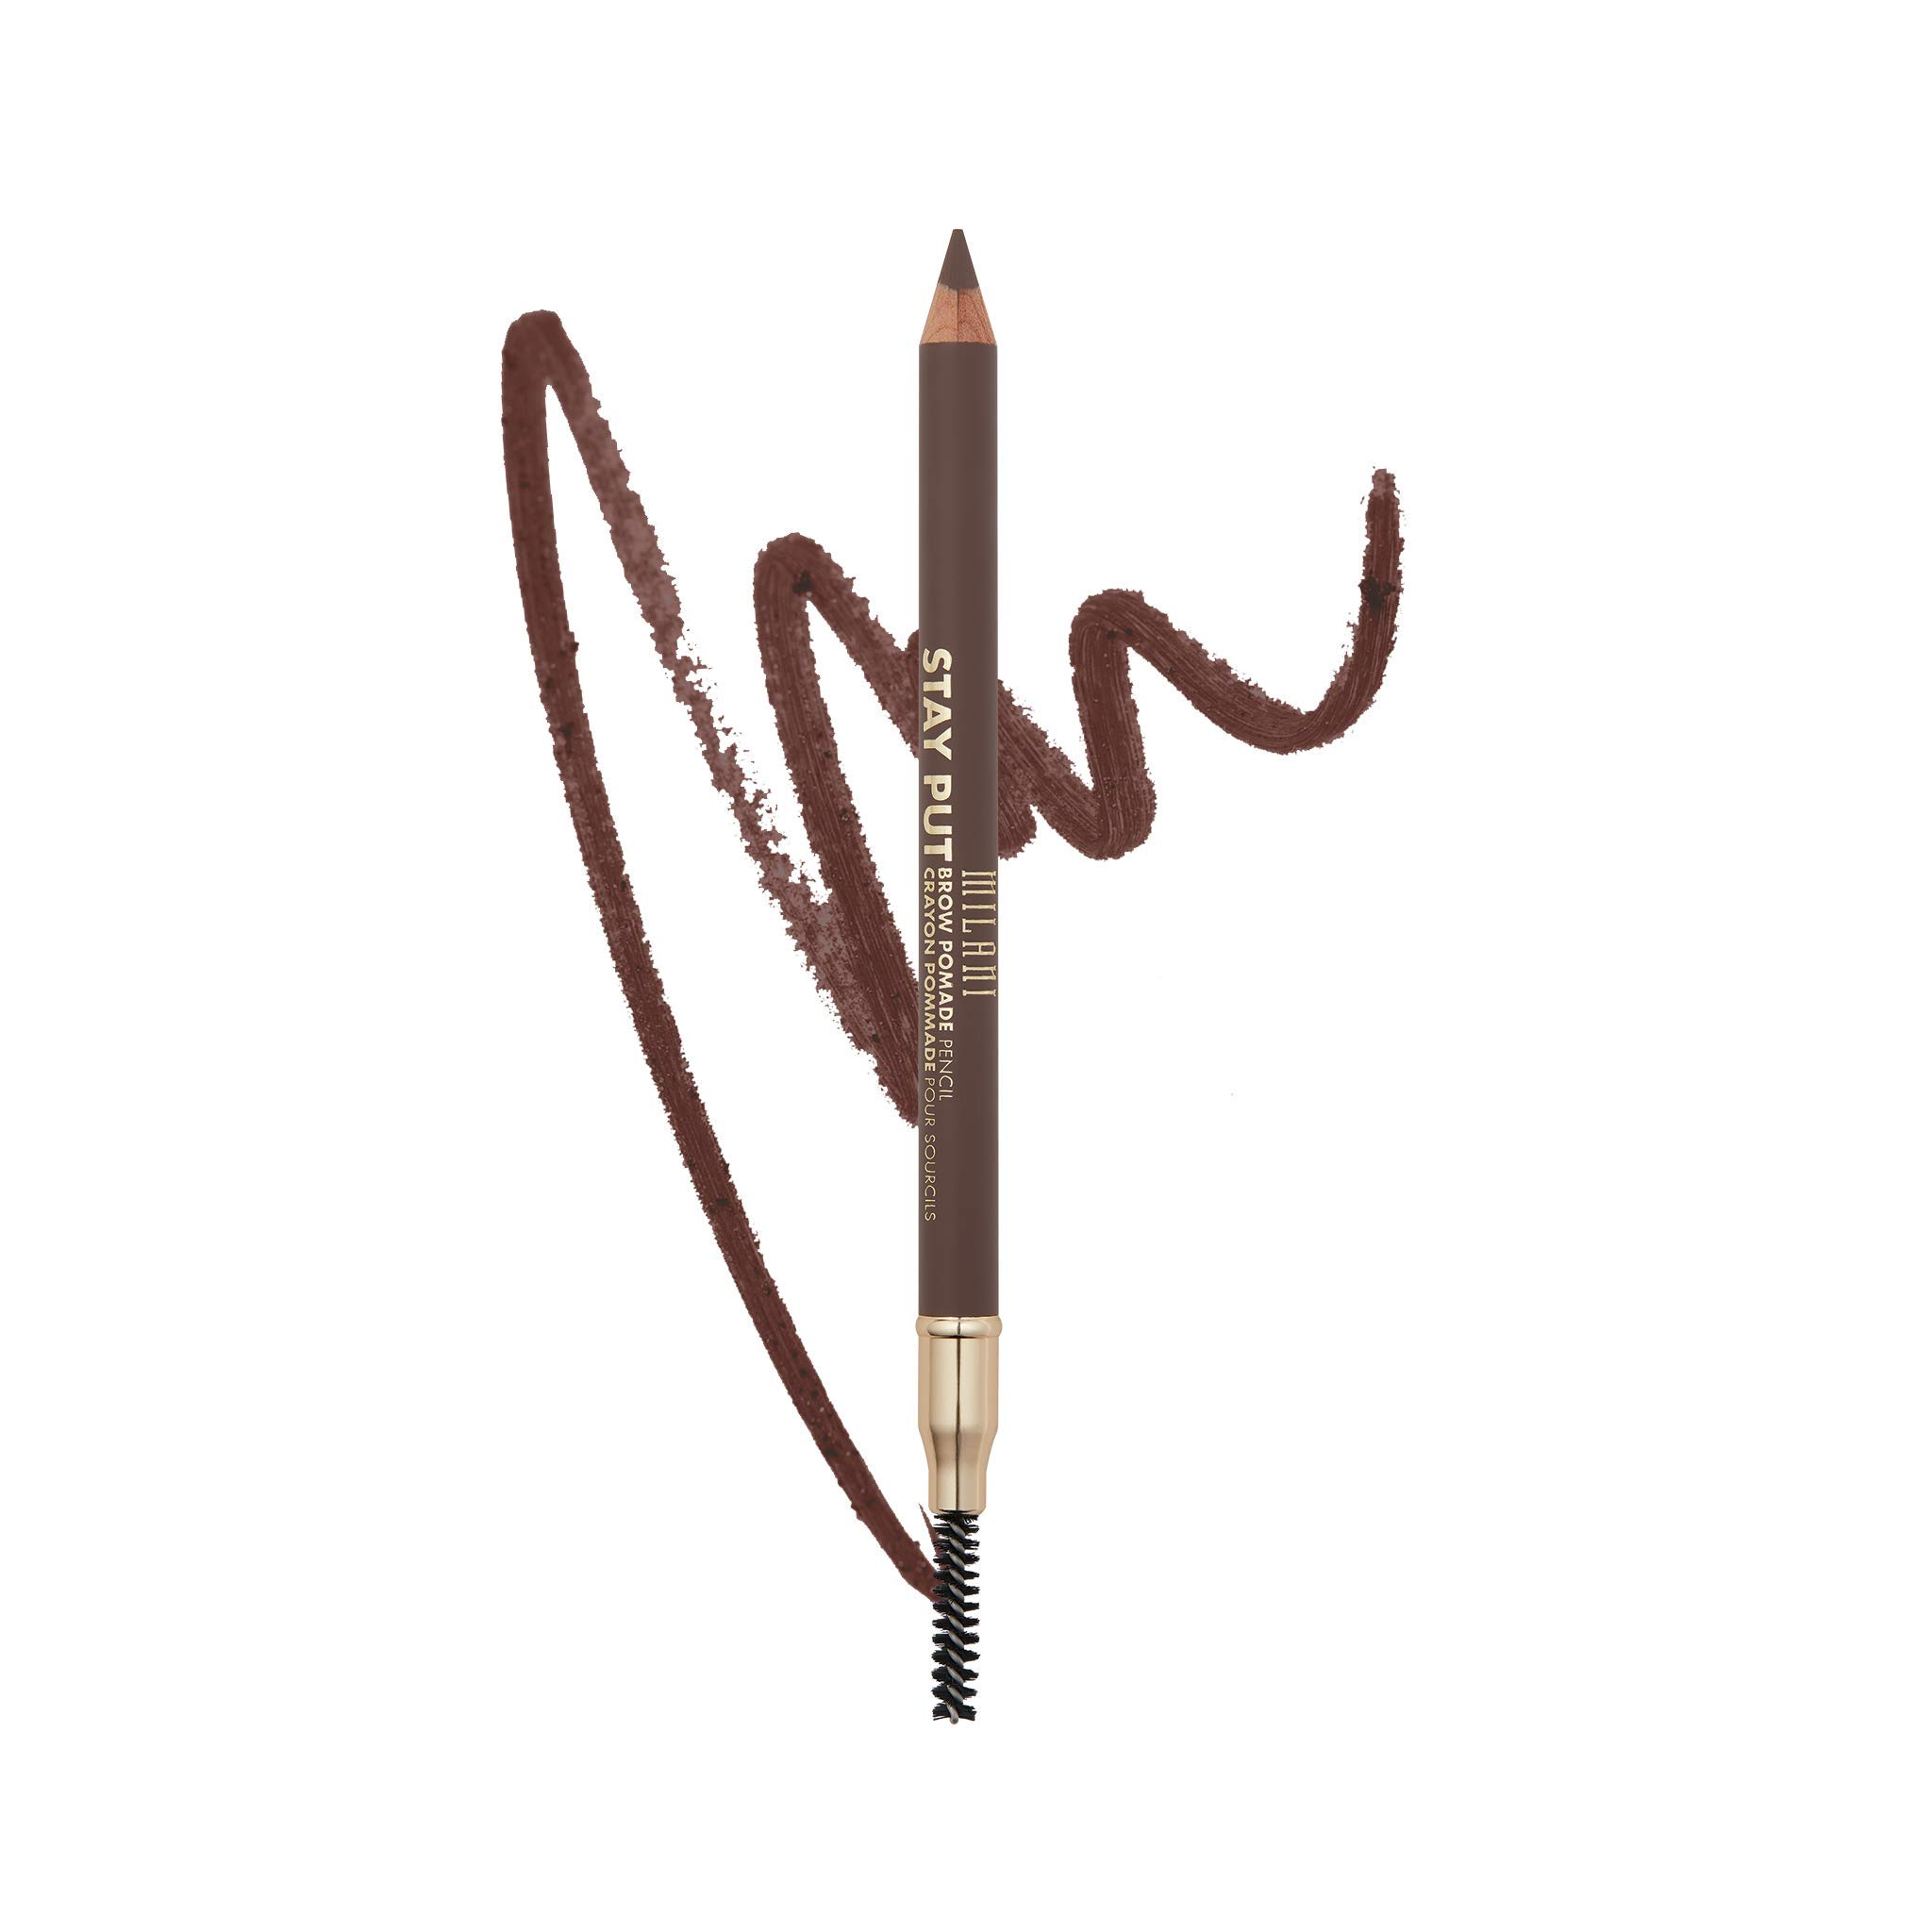 Milani Stay Put Brow Pomade Pencil - Dark Brown (0.03 Ounce) Vegan, Cruelty-Free Eyebrow Pencil to Fill, Shape & Define Brows